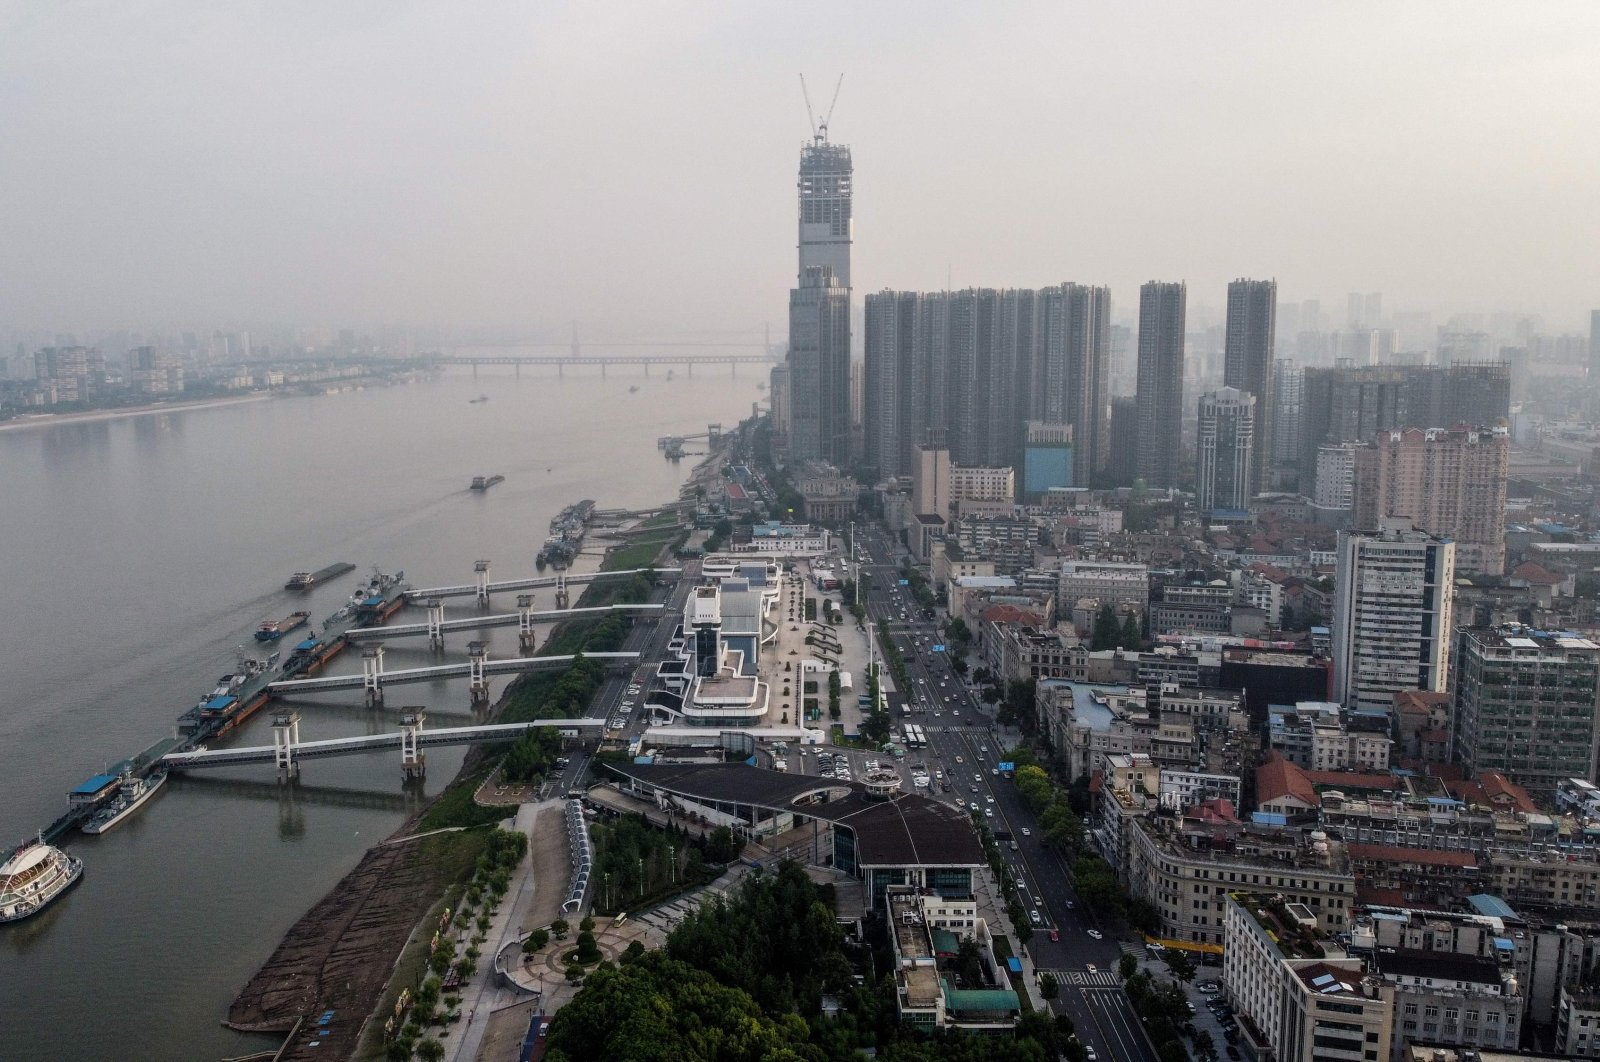 An aerial view shows the city of Wuhan, central Hubei province, China, May 15, 2020. (AFP Photo)